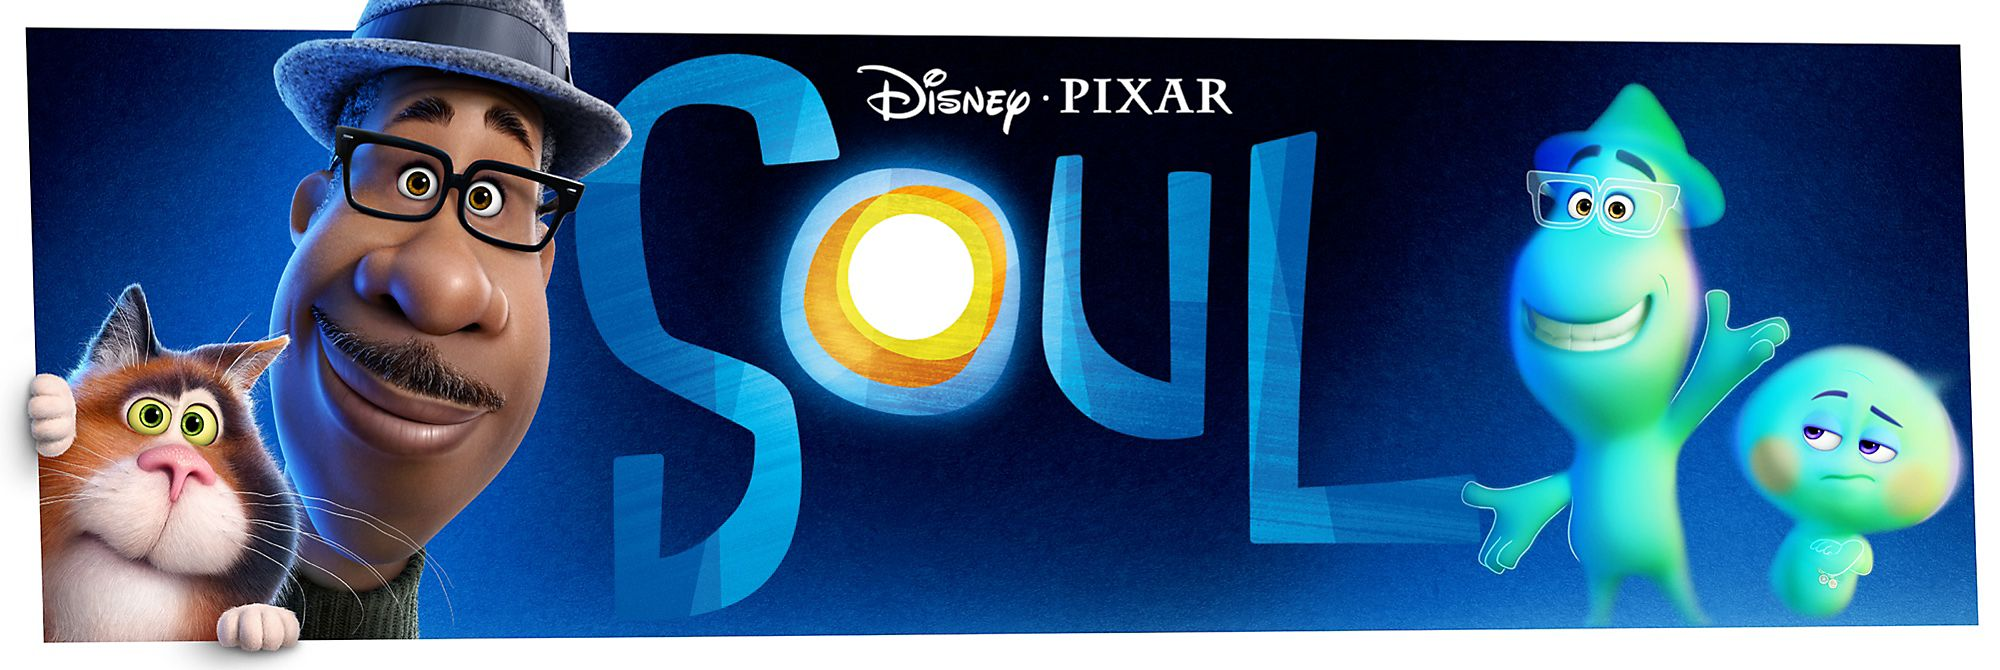 Soul Ya disponible en exclusiva en Disney+